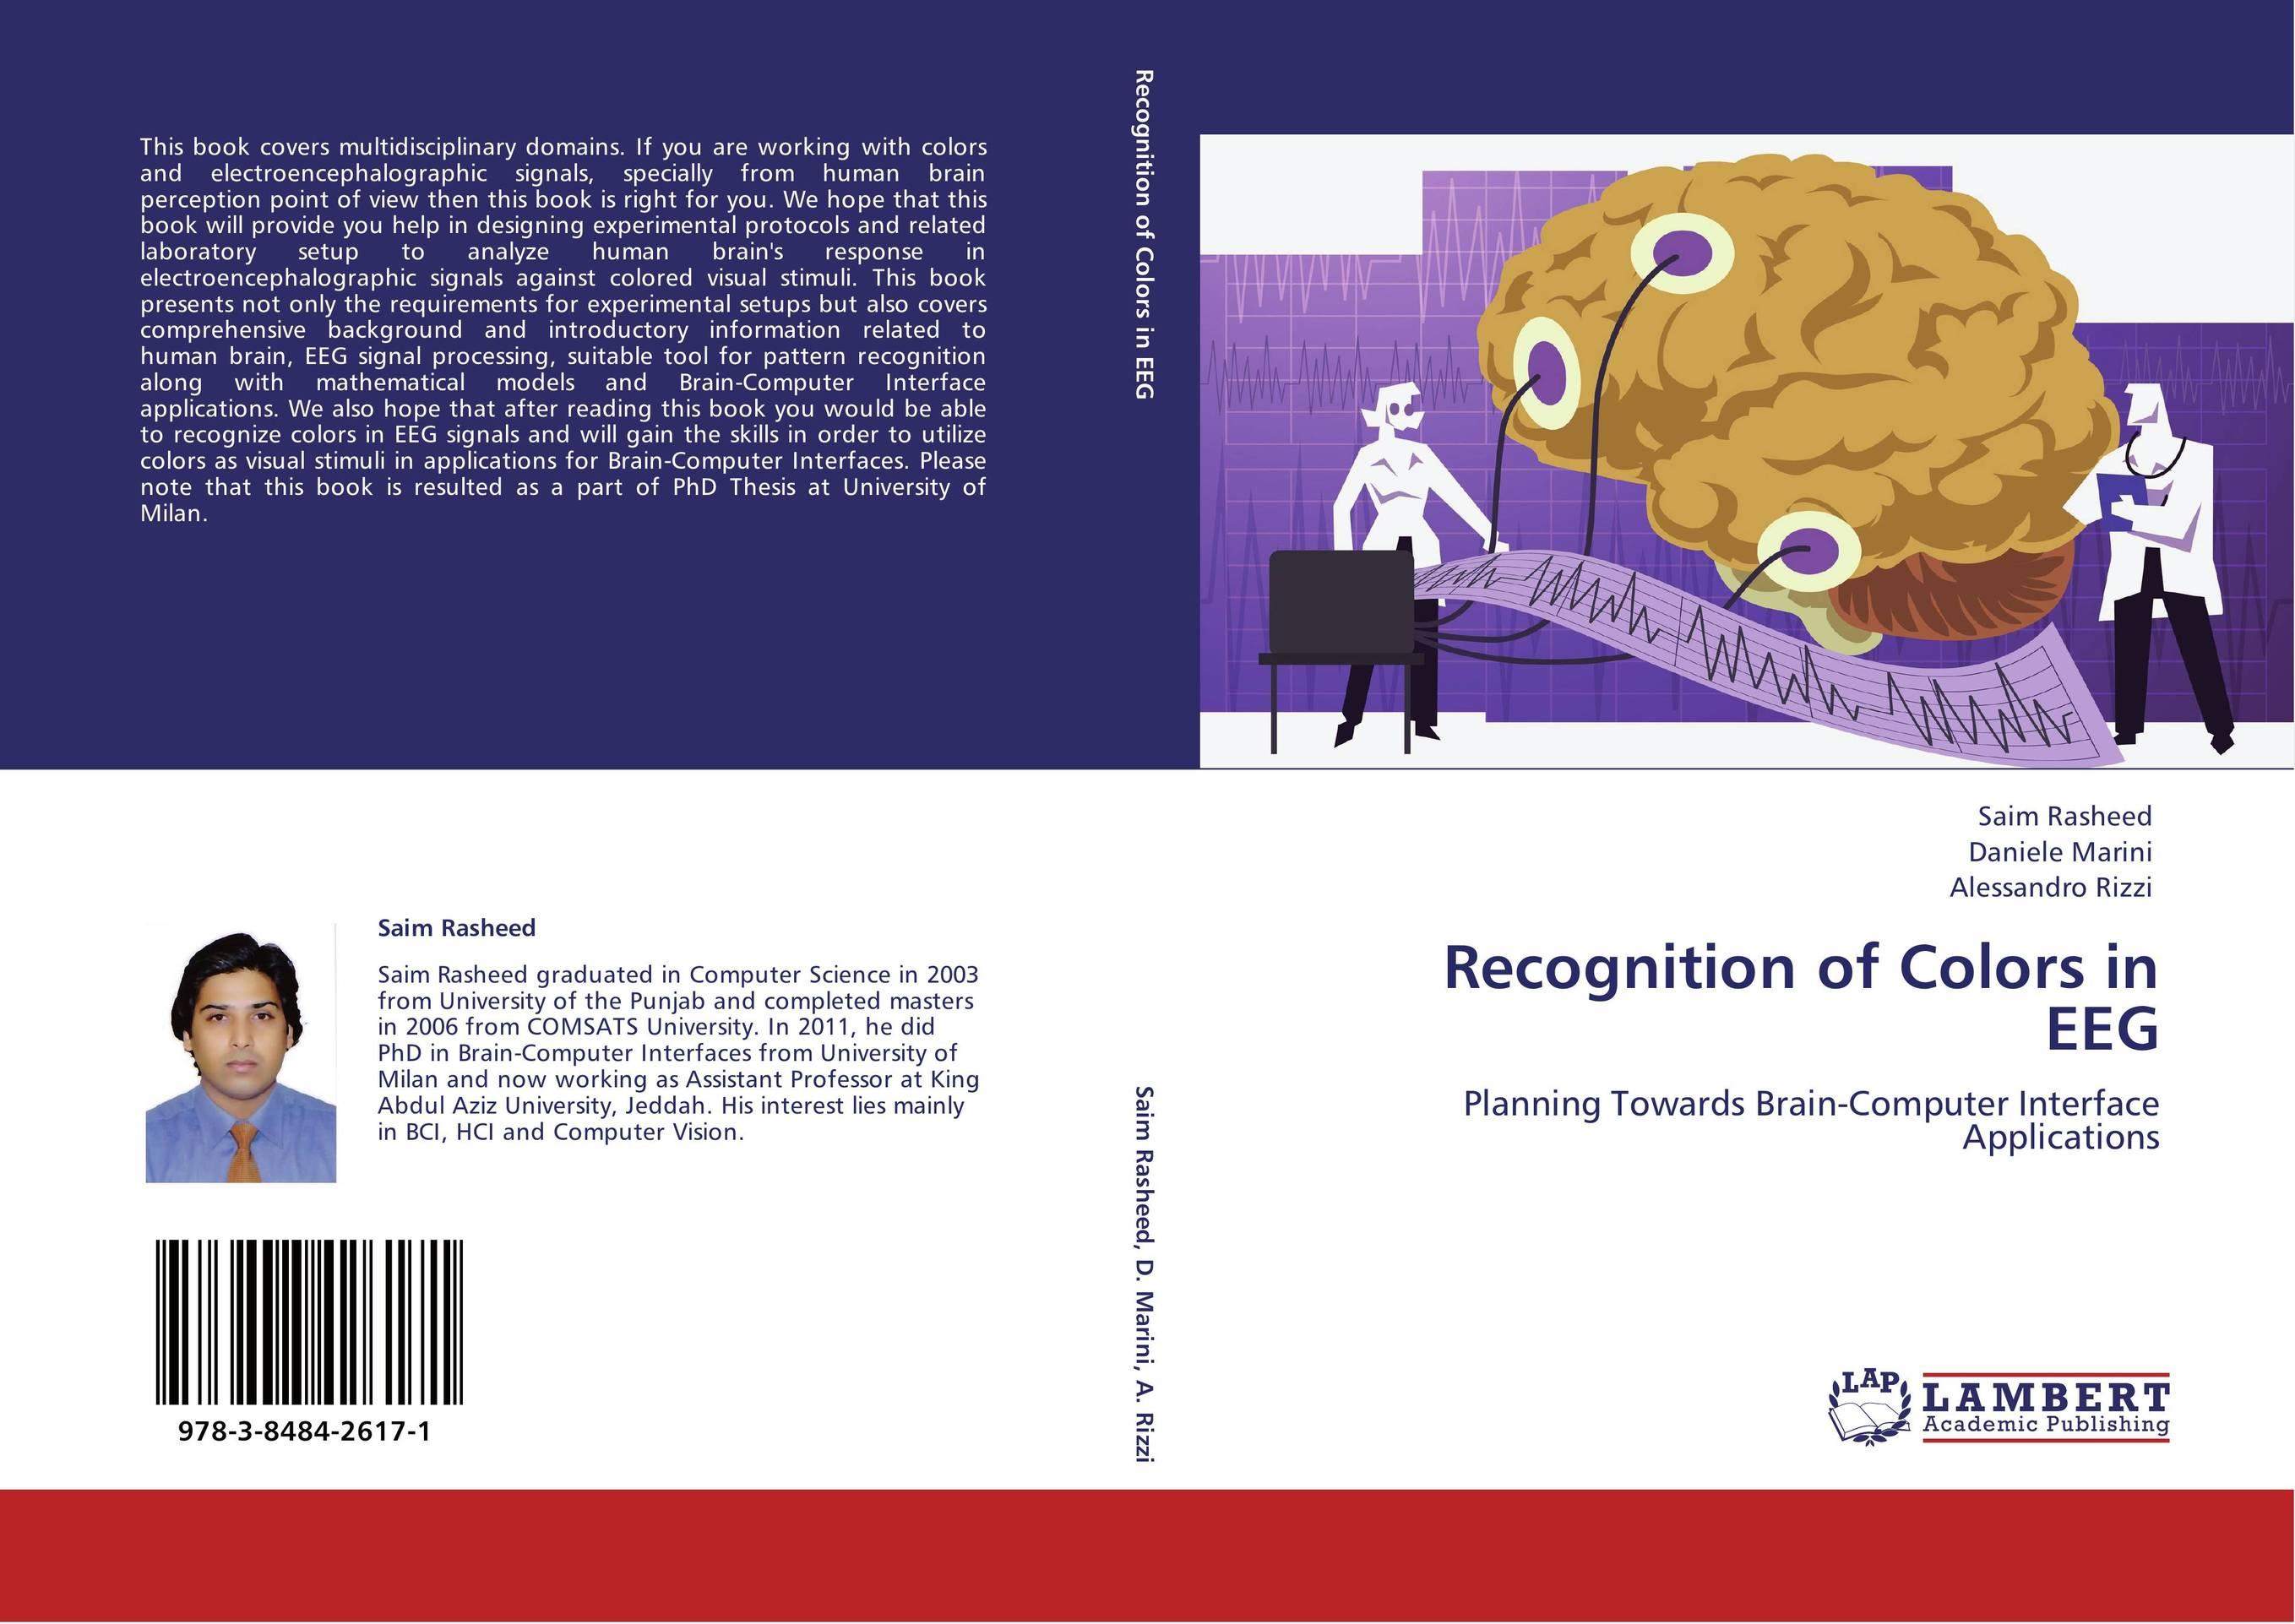 thesis on brain computer interface Essays powered by login essay about brain computer interface submitted by snatko words: 2075 pages: 9 open document brain computer interface (bci) samuel.